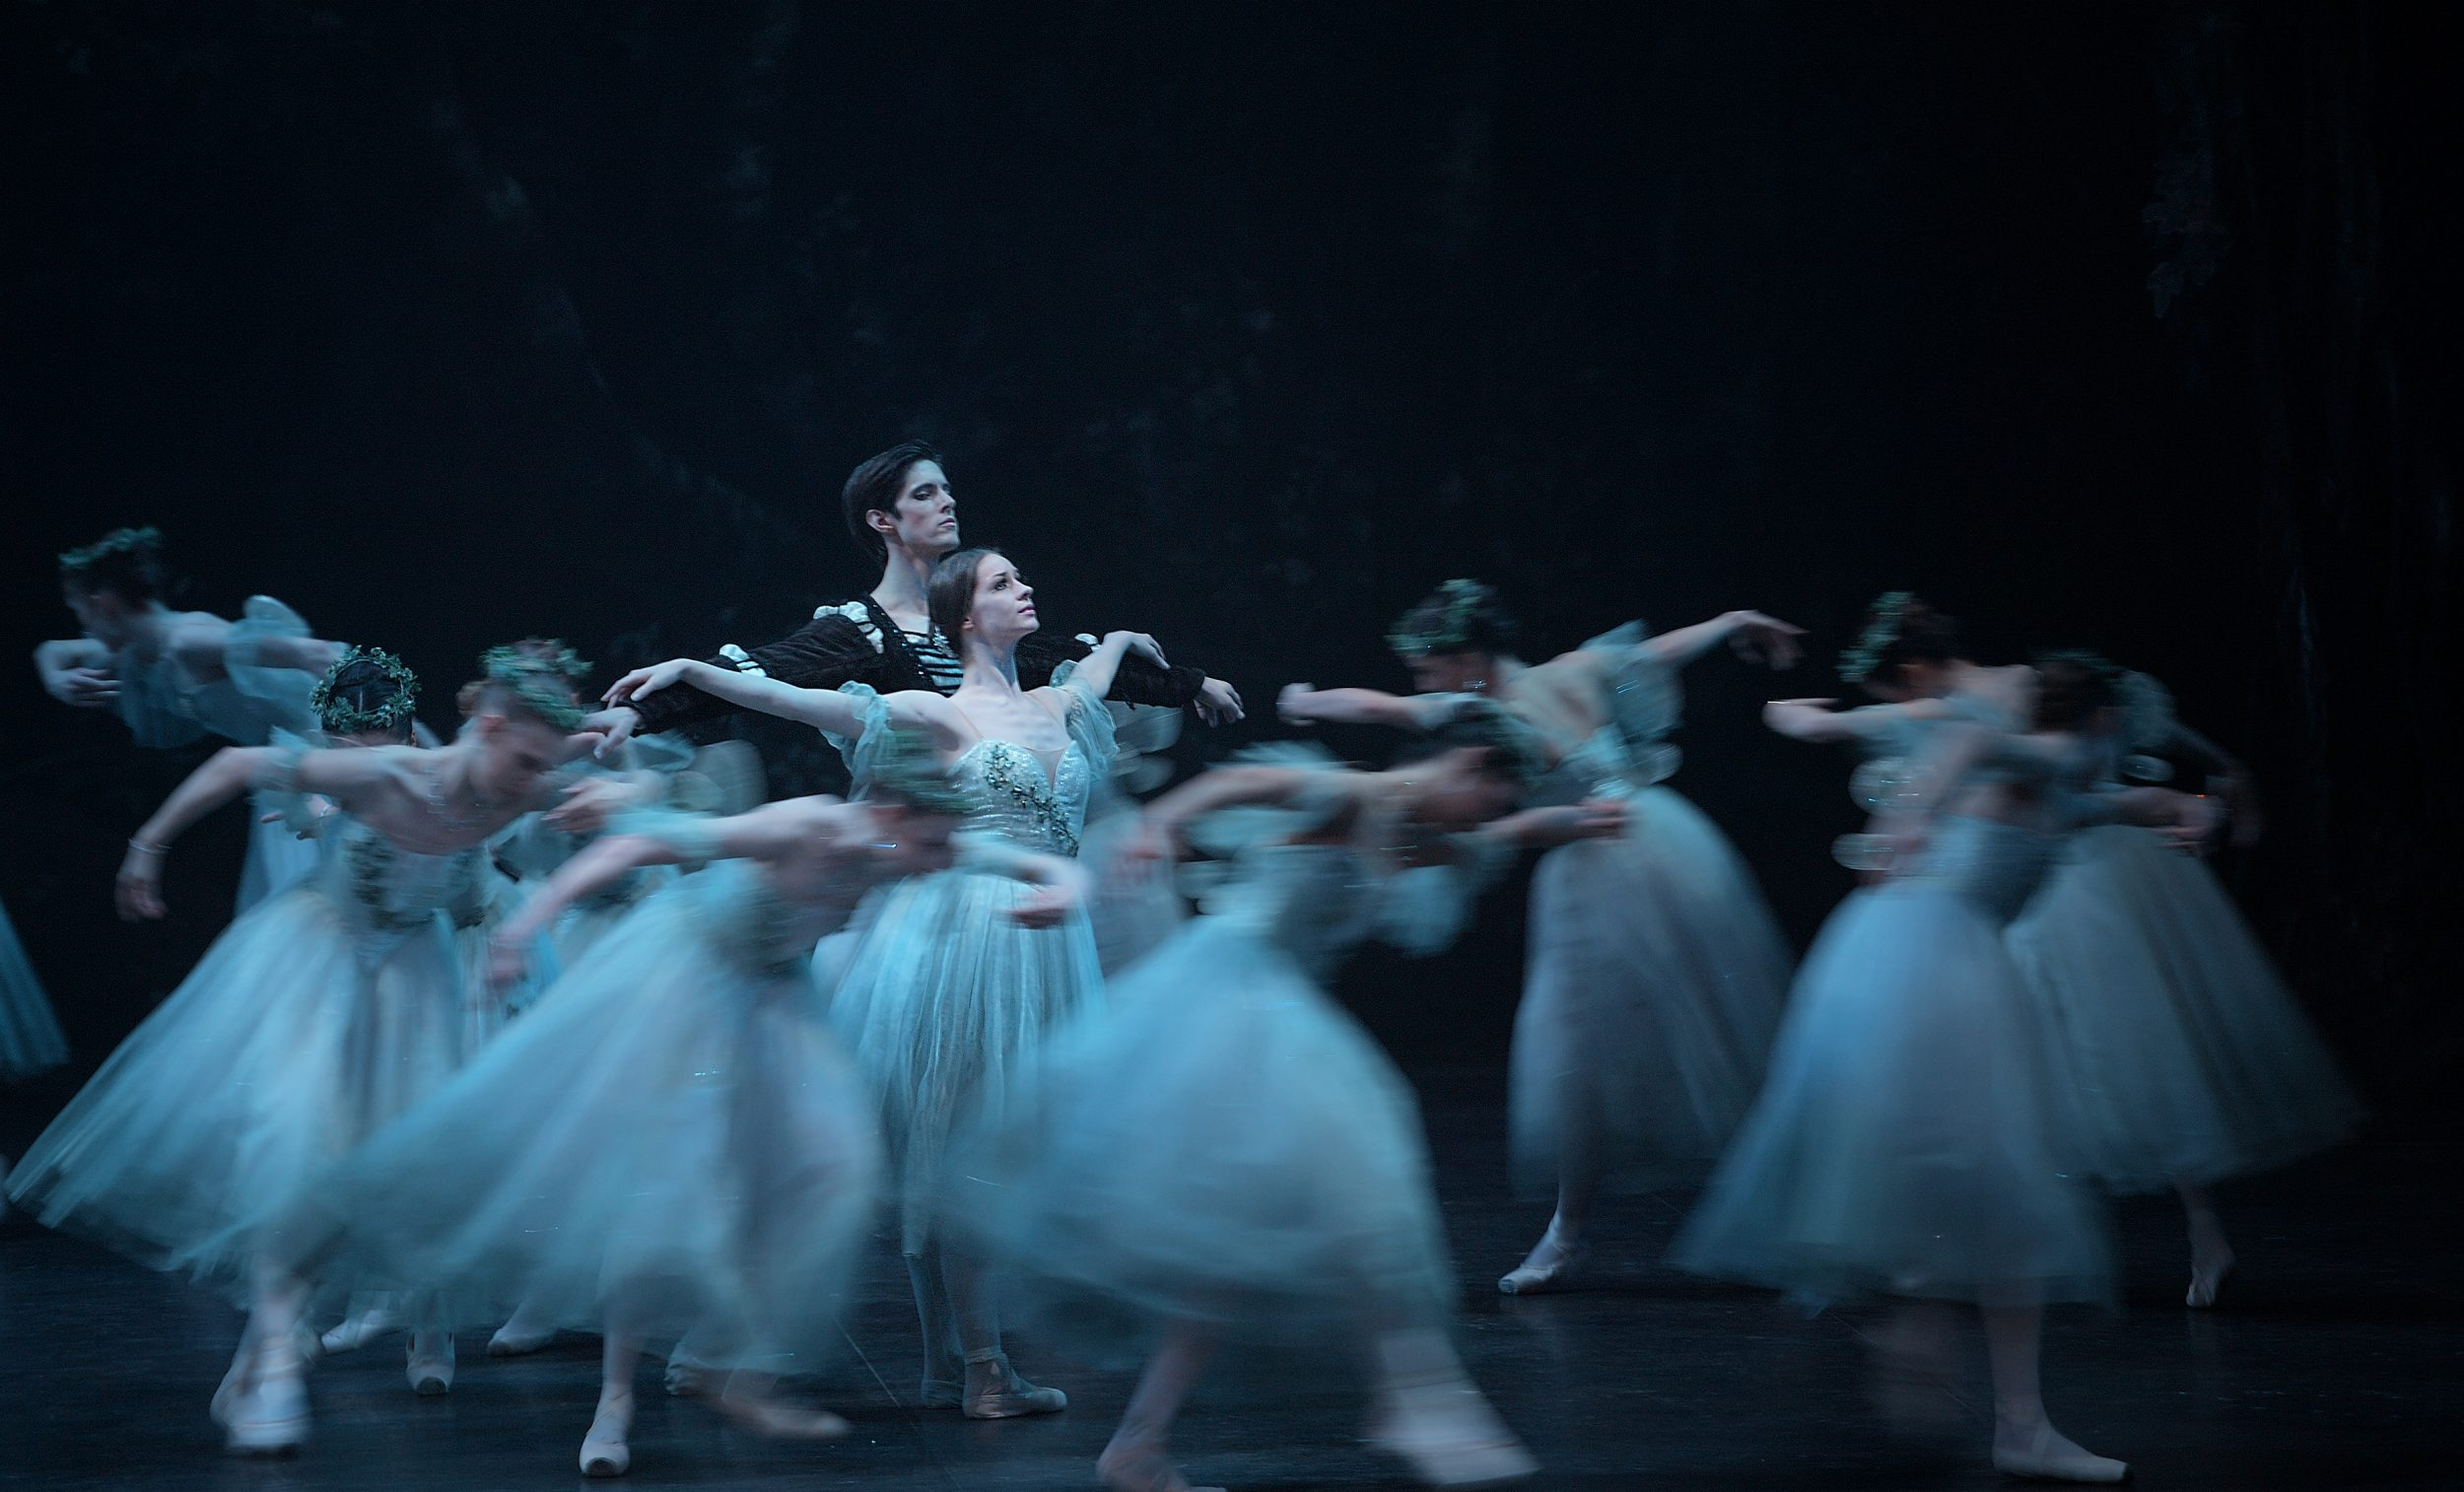 Laurretta Summerscales as Giselle and Xander Parish as Albrecht in Giselle (c) Laurent Liotardo (2)